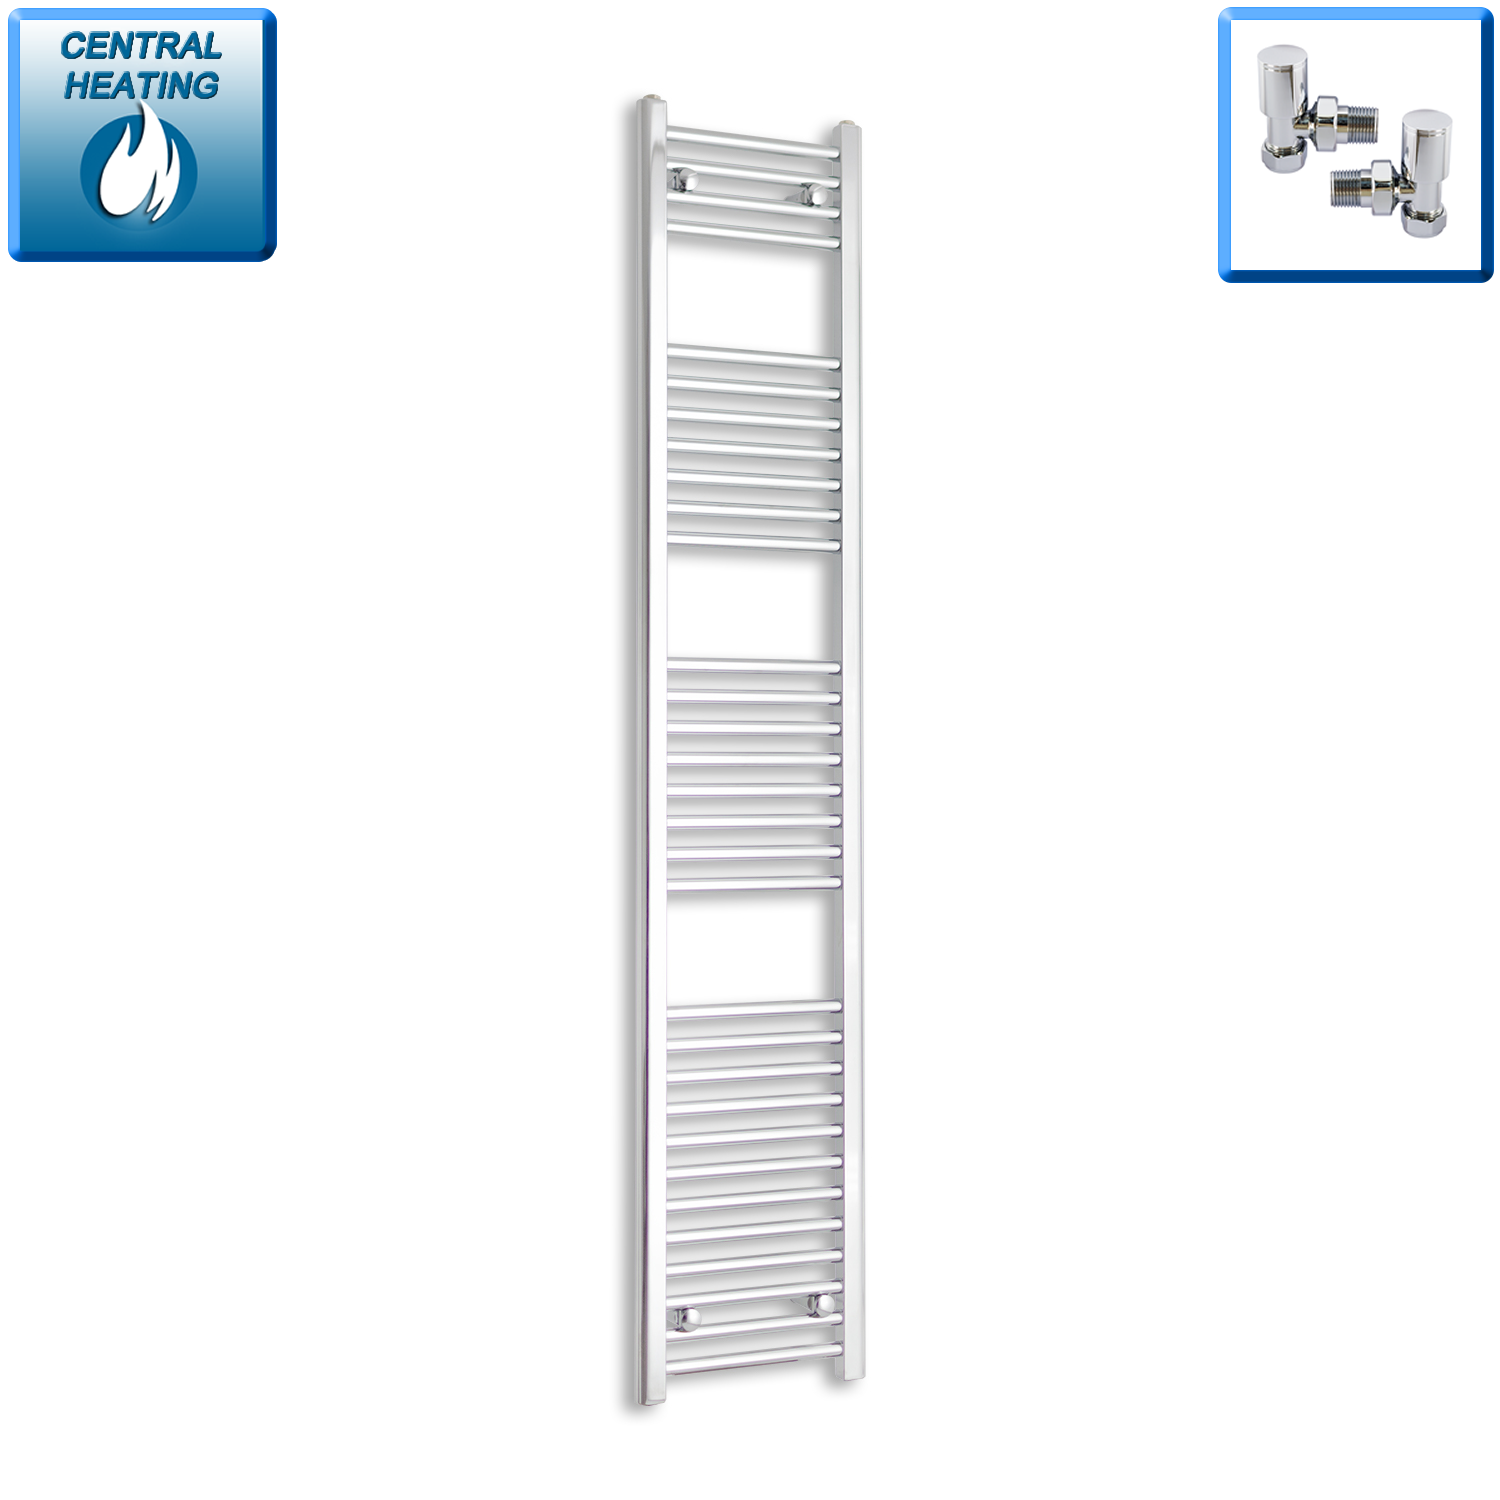 300mm Wide 1800mm High Chrome Towel Rail Radiator With Angled Valve